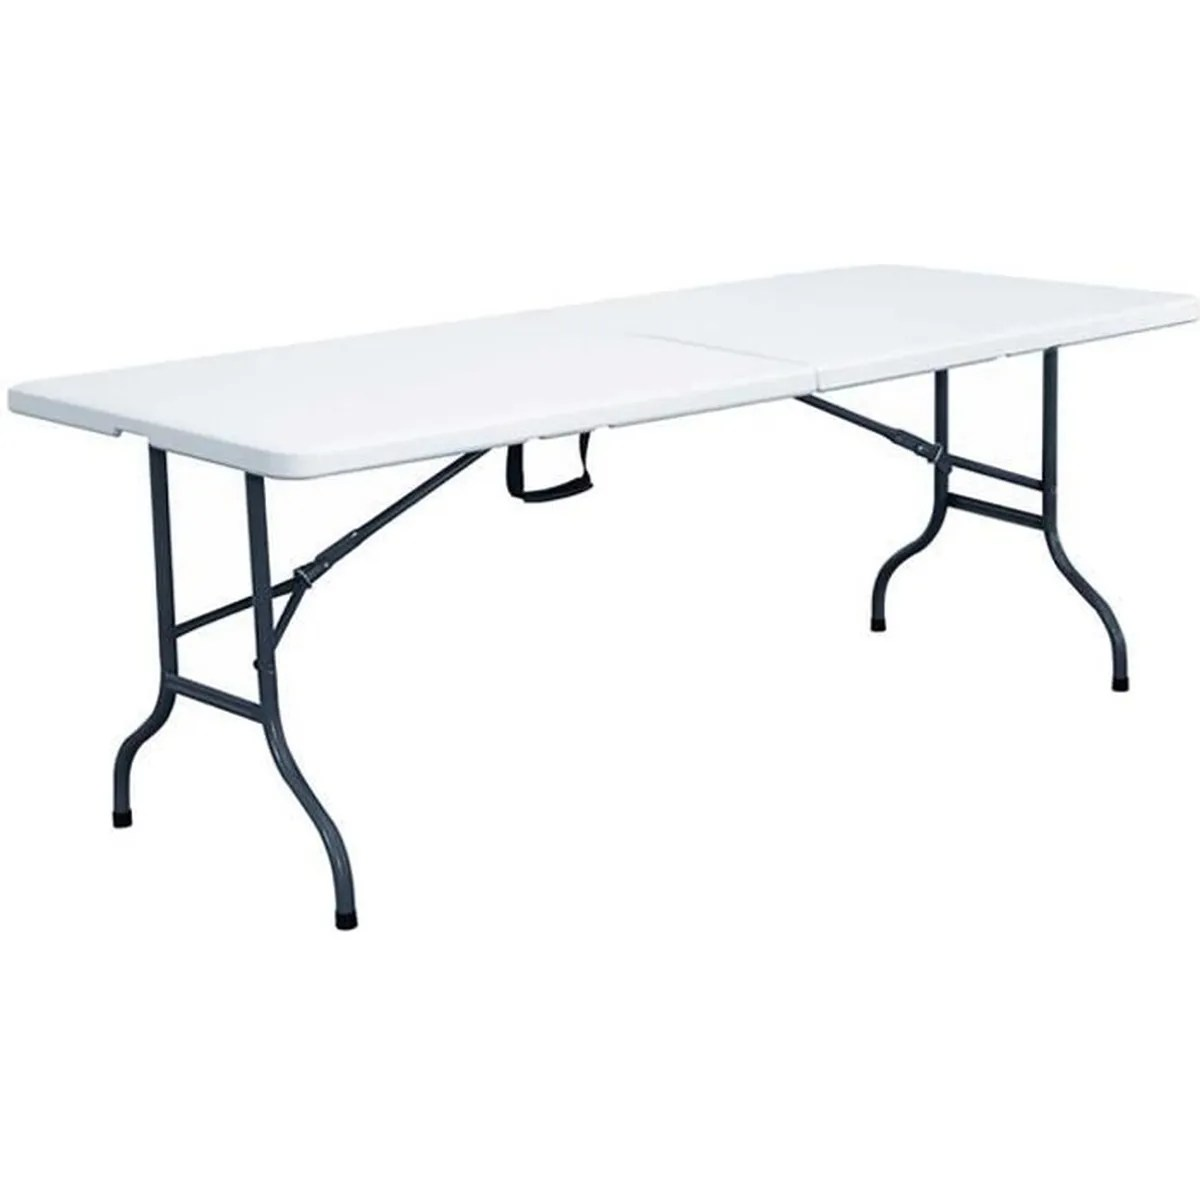 Pied Table Pliant Table Pliante Transportable 12 Personnes 244 Cm Achat Vente